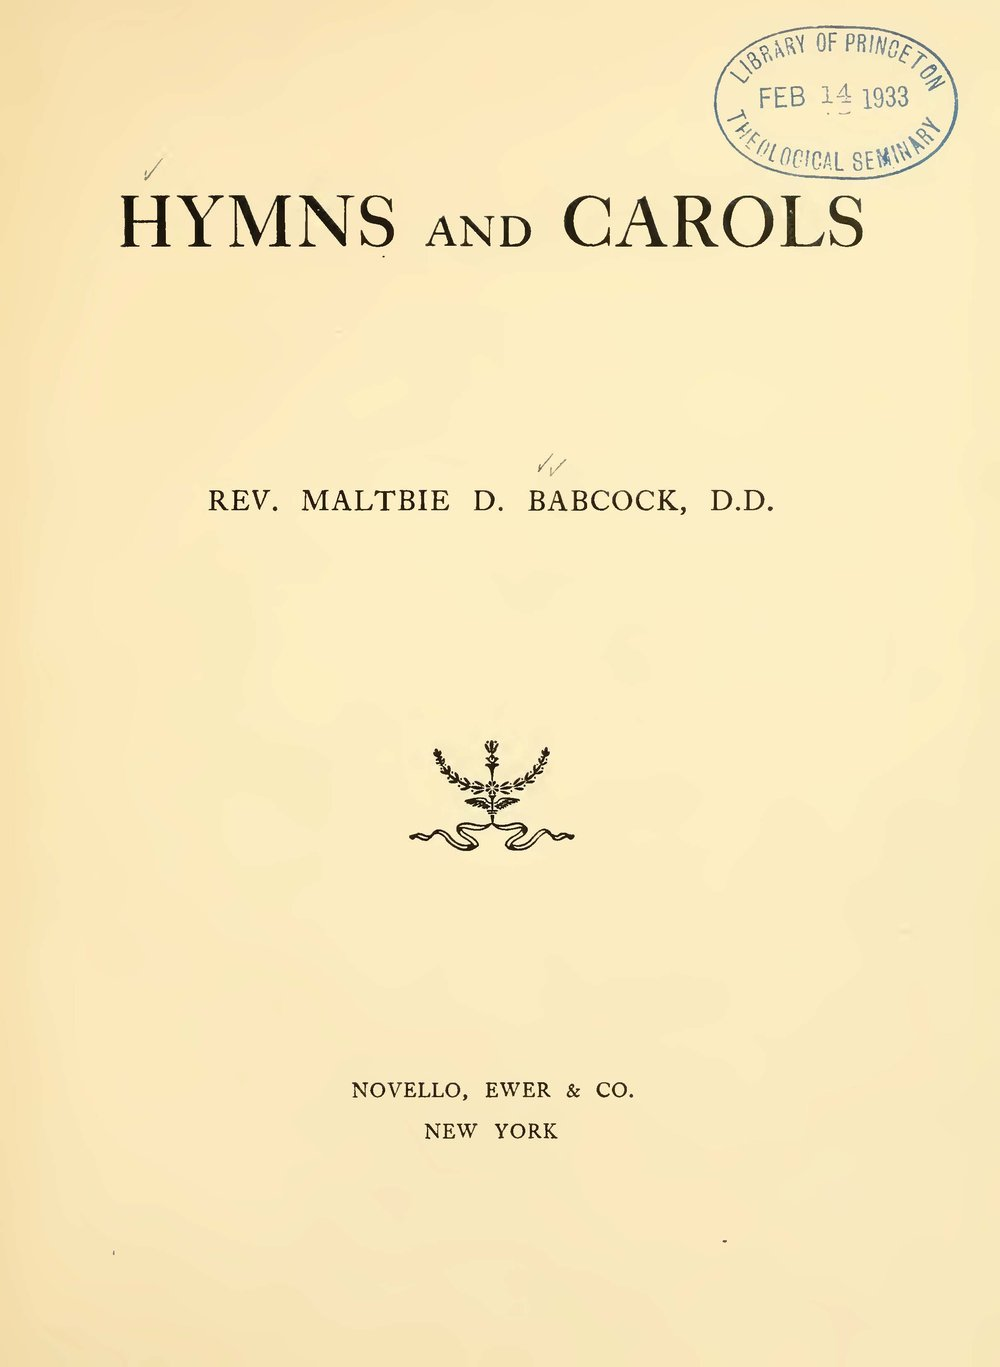 Babcock, Maltbie Davenport, Hymns and Carols Title Page.jpg